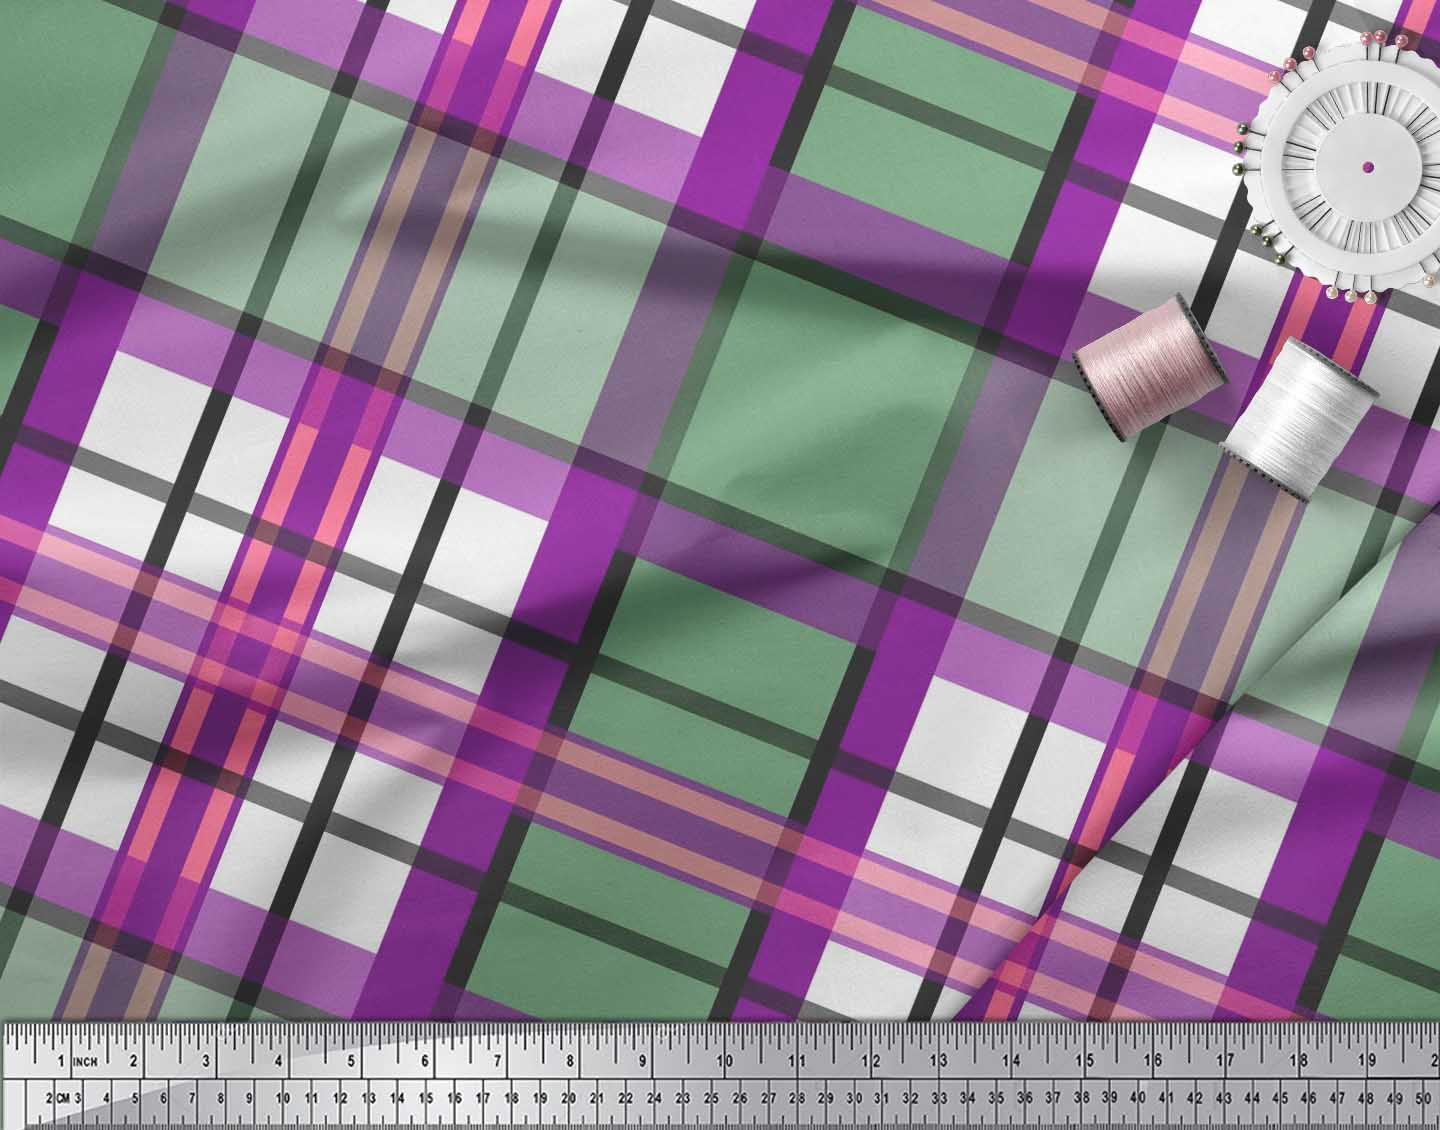 Soimoi-Purple-Cotton-Poplin-Fabric-Gingham-Check-Print-Sewing-Fabric-7PU thumbnail 4